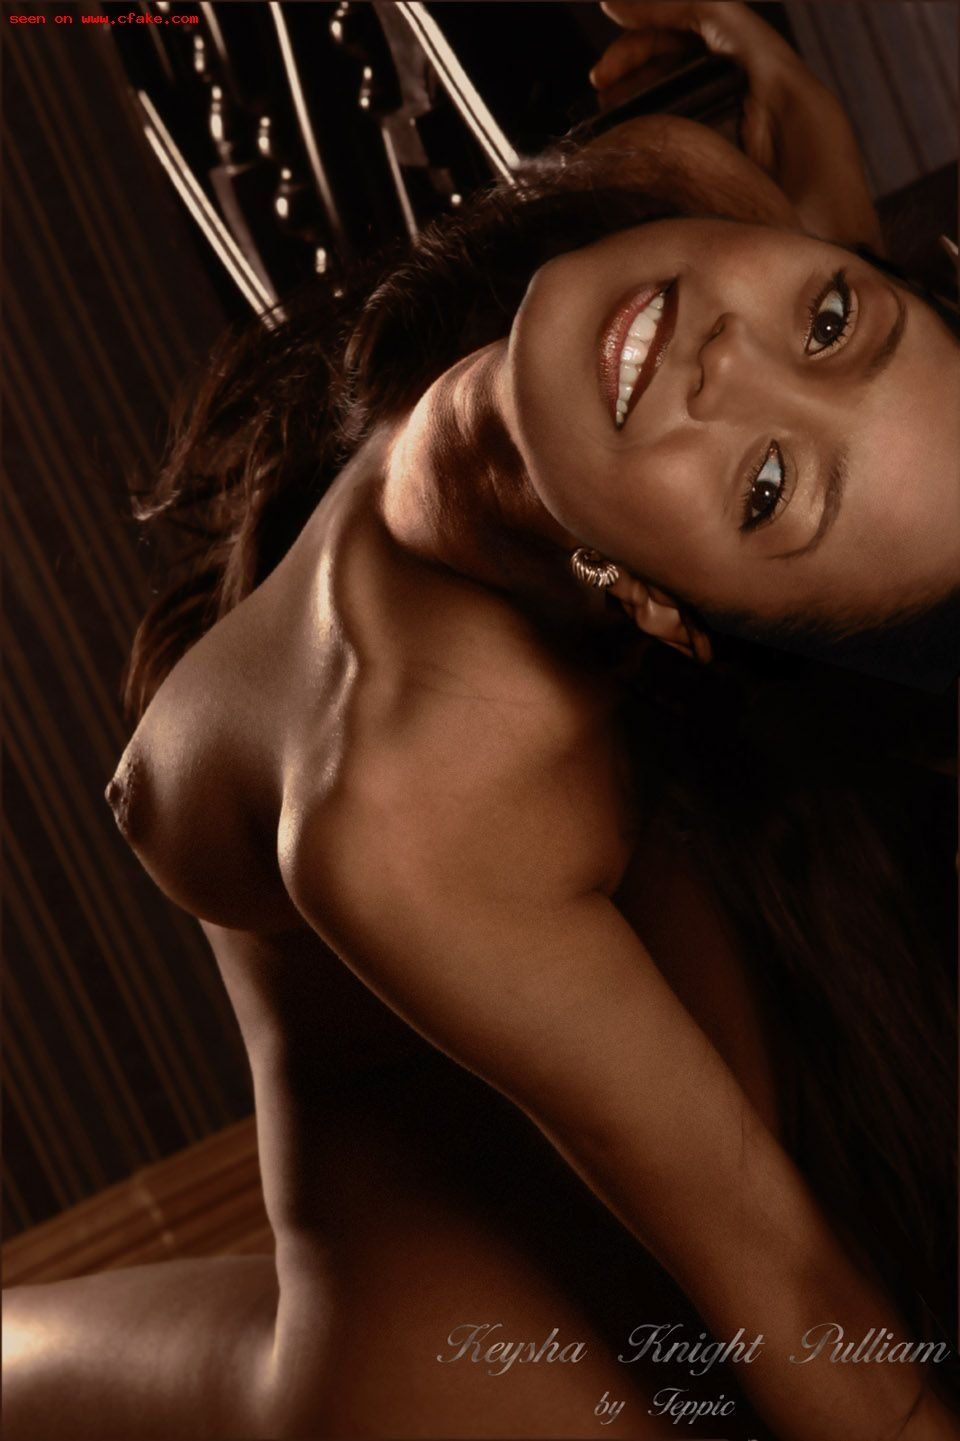 Copycat recommend best of Keisha knight pulliam does porn